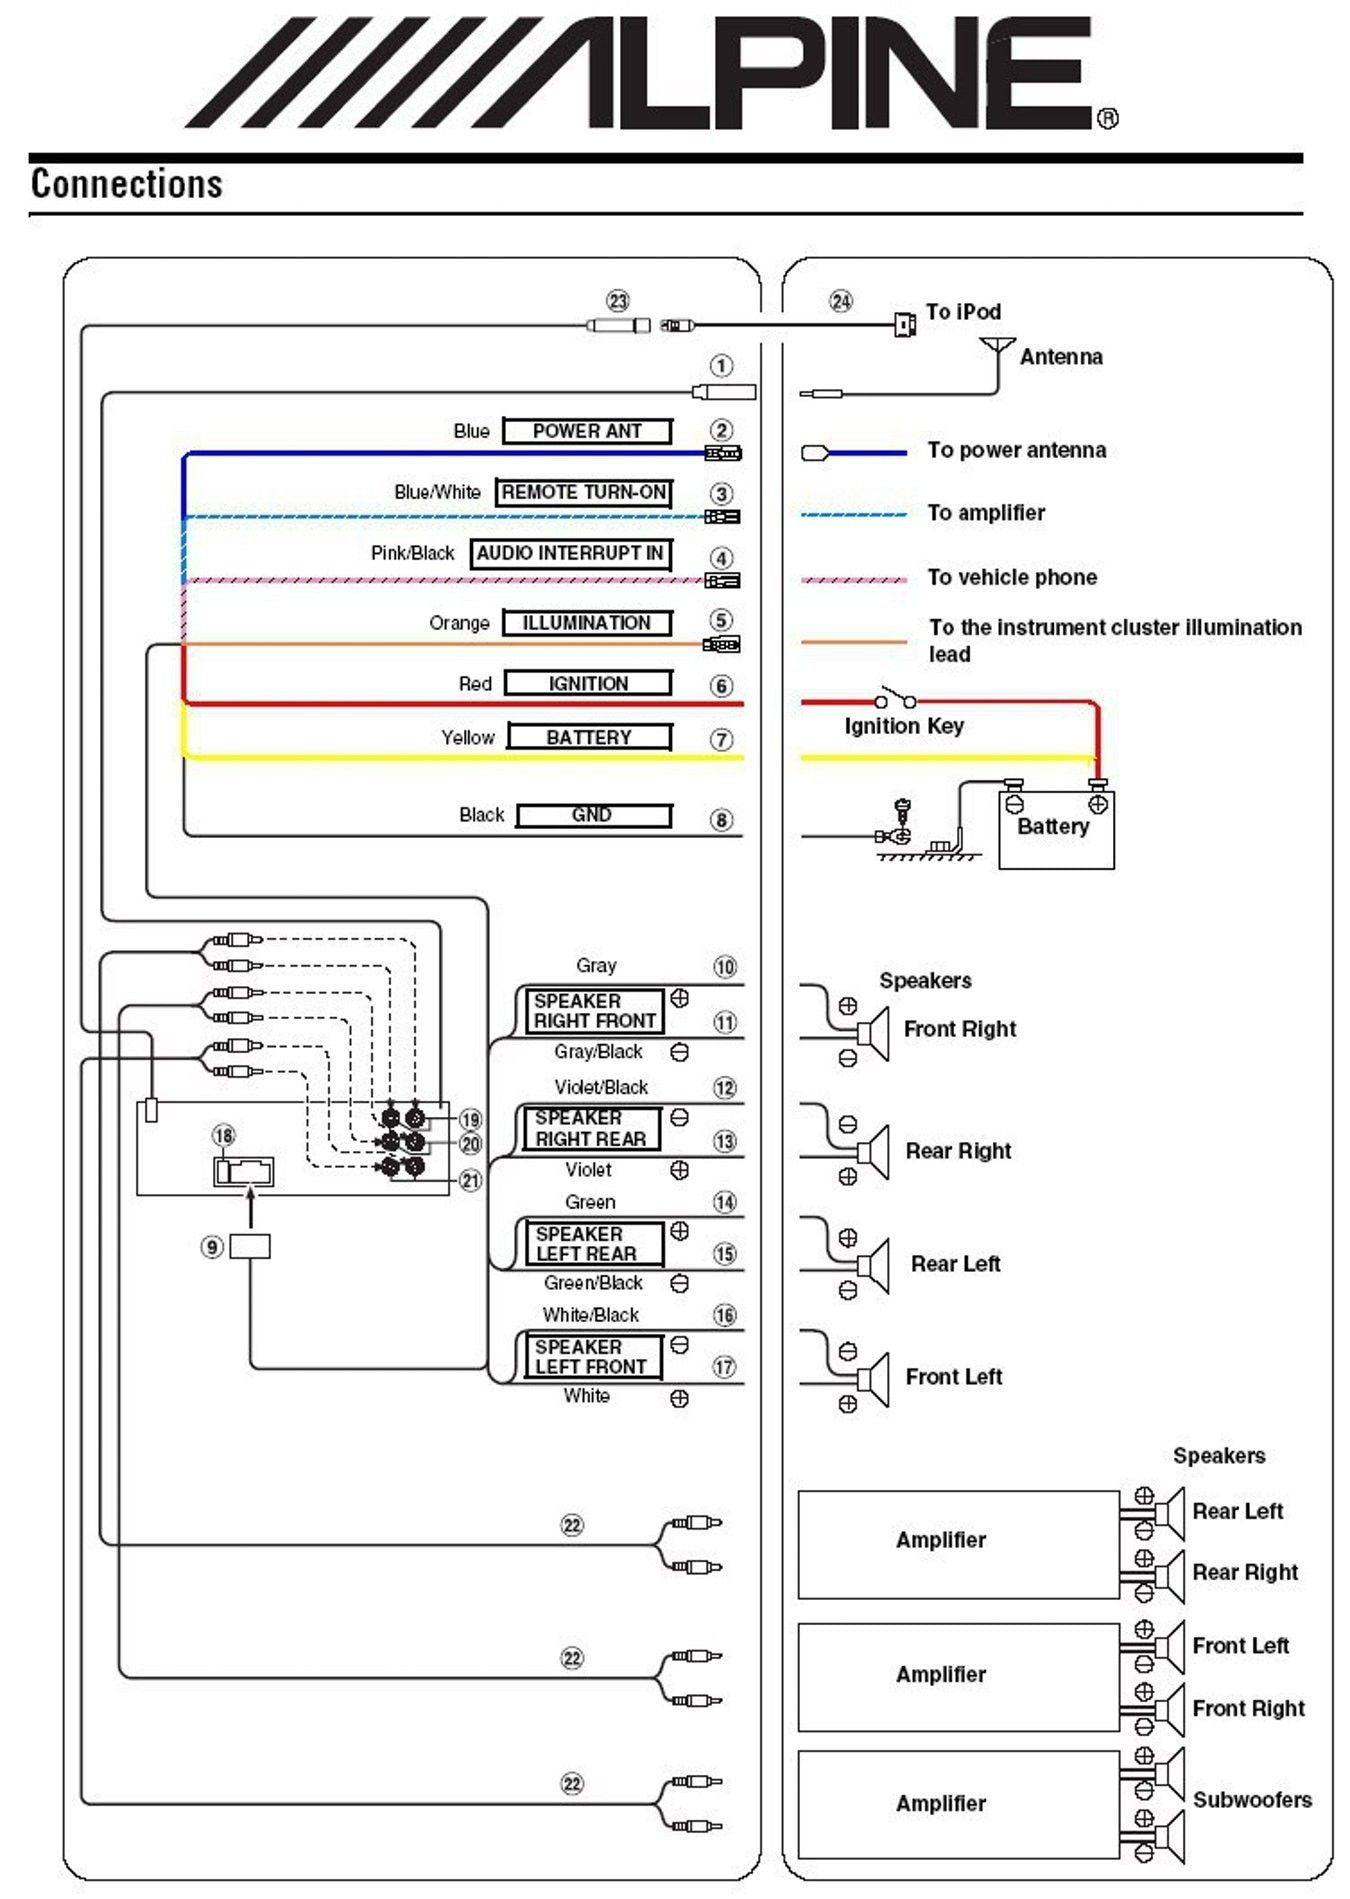 New Bmw Amplifier Wiring Diagram Diagram Diagramtemplate Diagramsample Amplificador